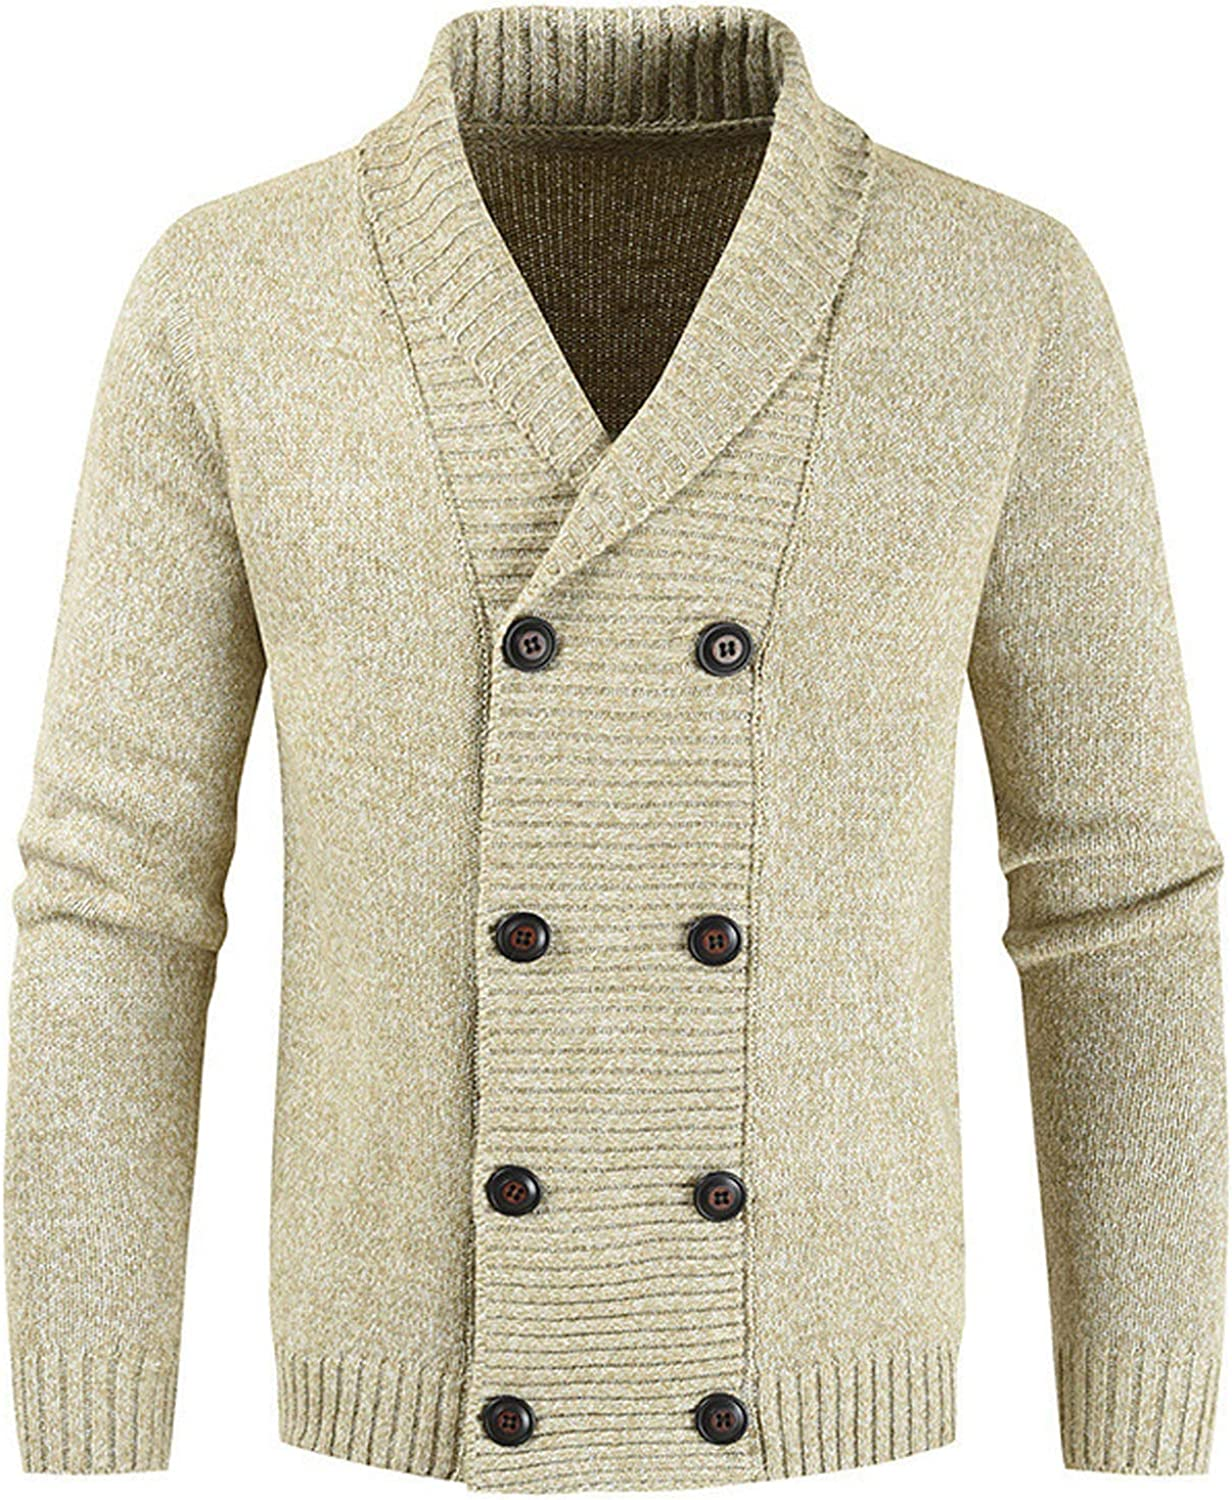 Flygo Men's Casual Shawl Collar Double Breasted Knitted Cardigan Sweaters